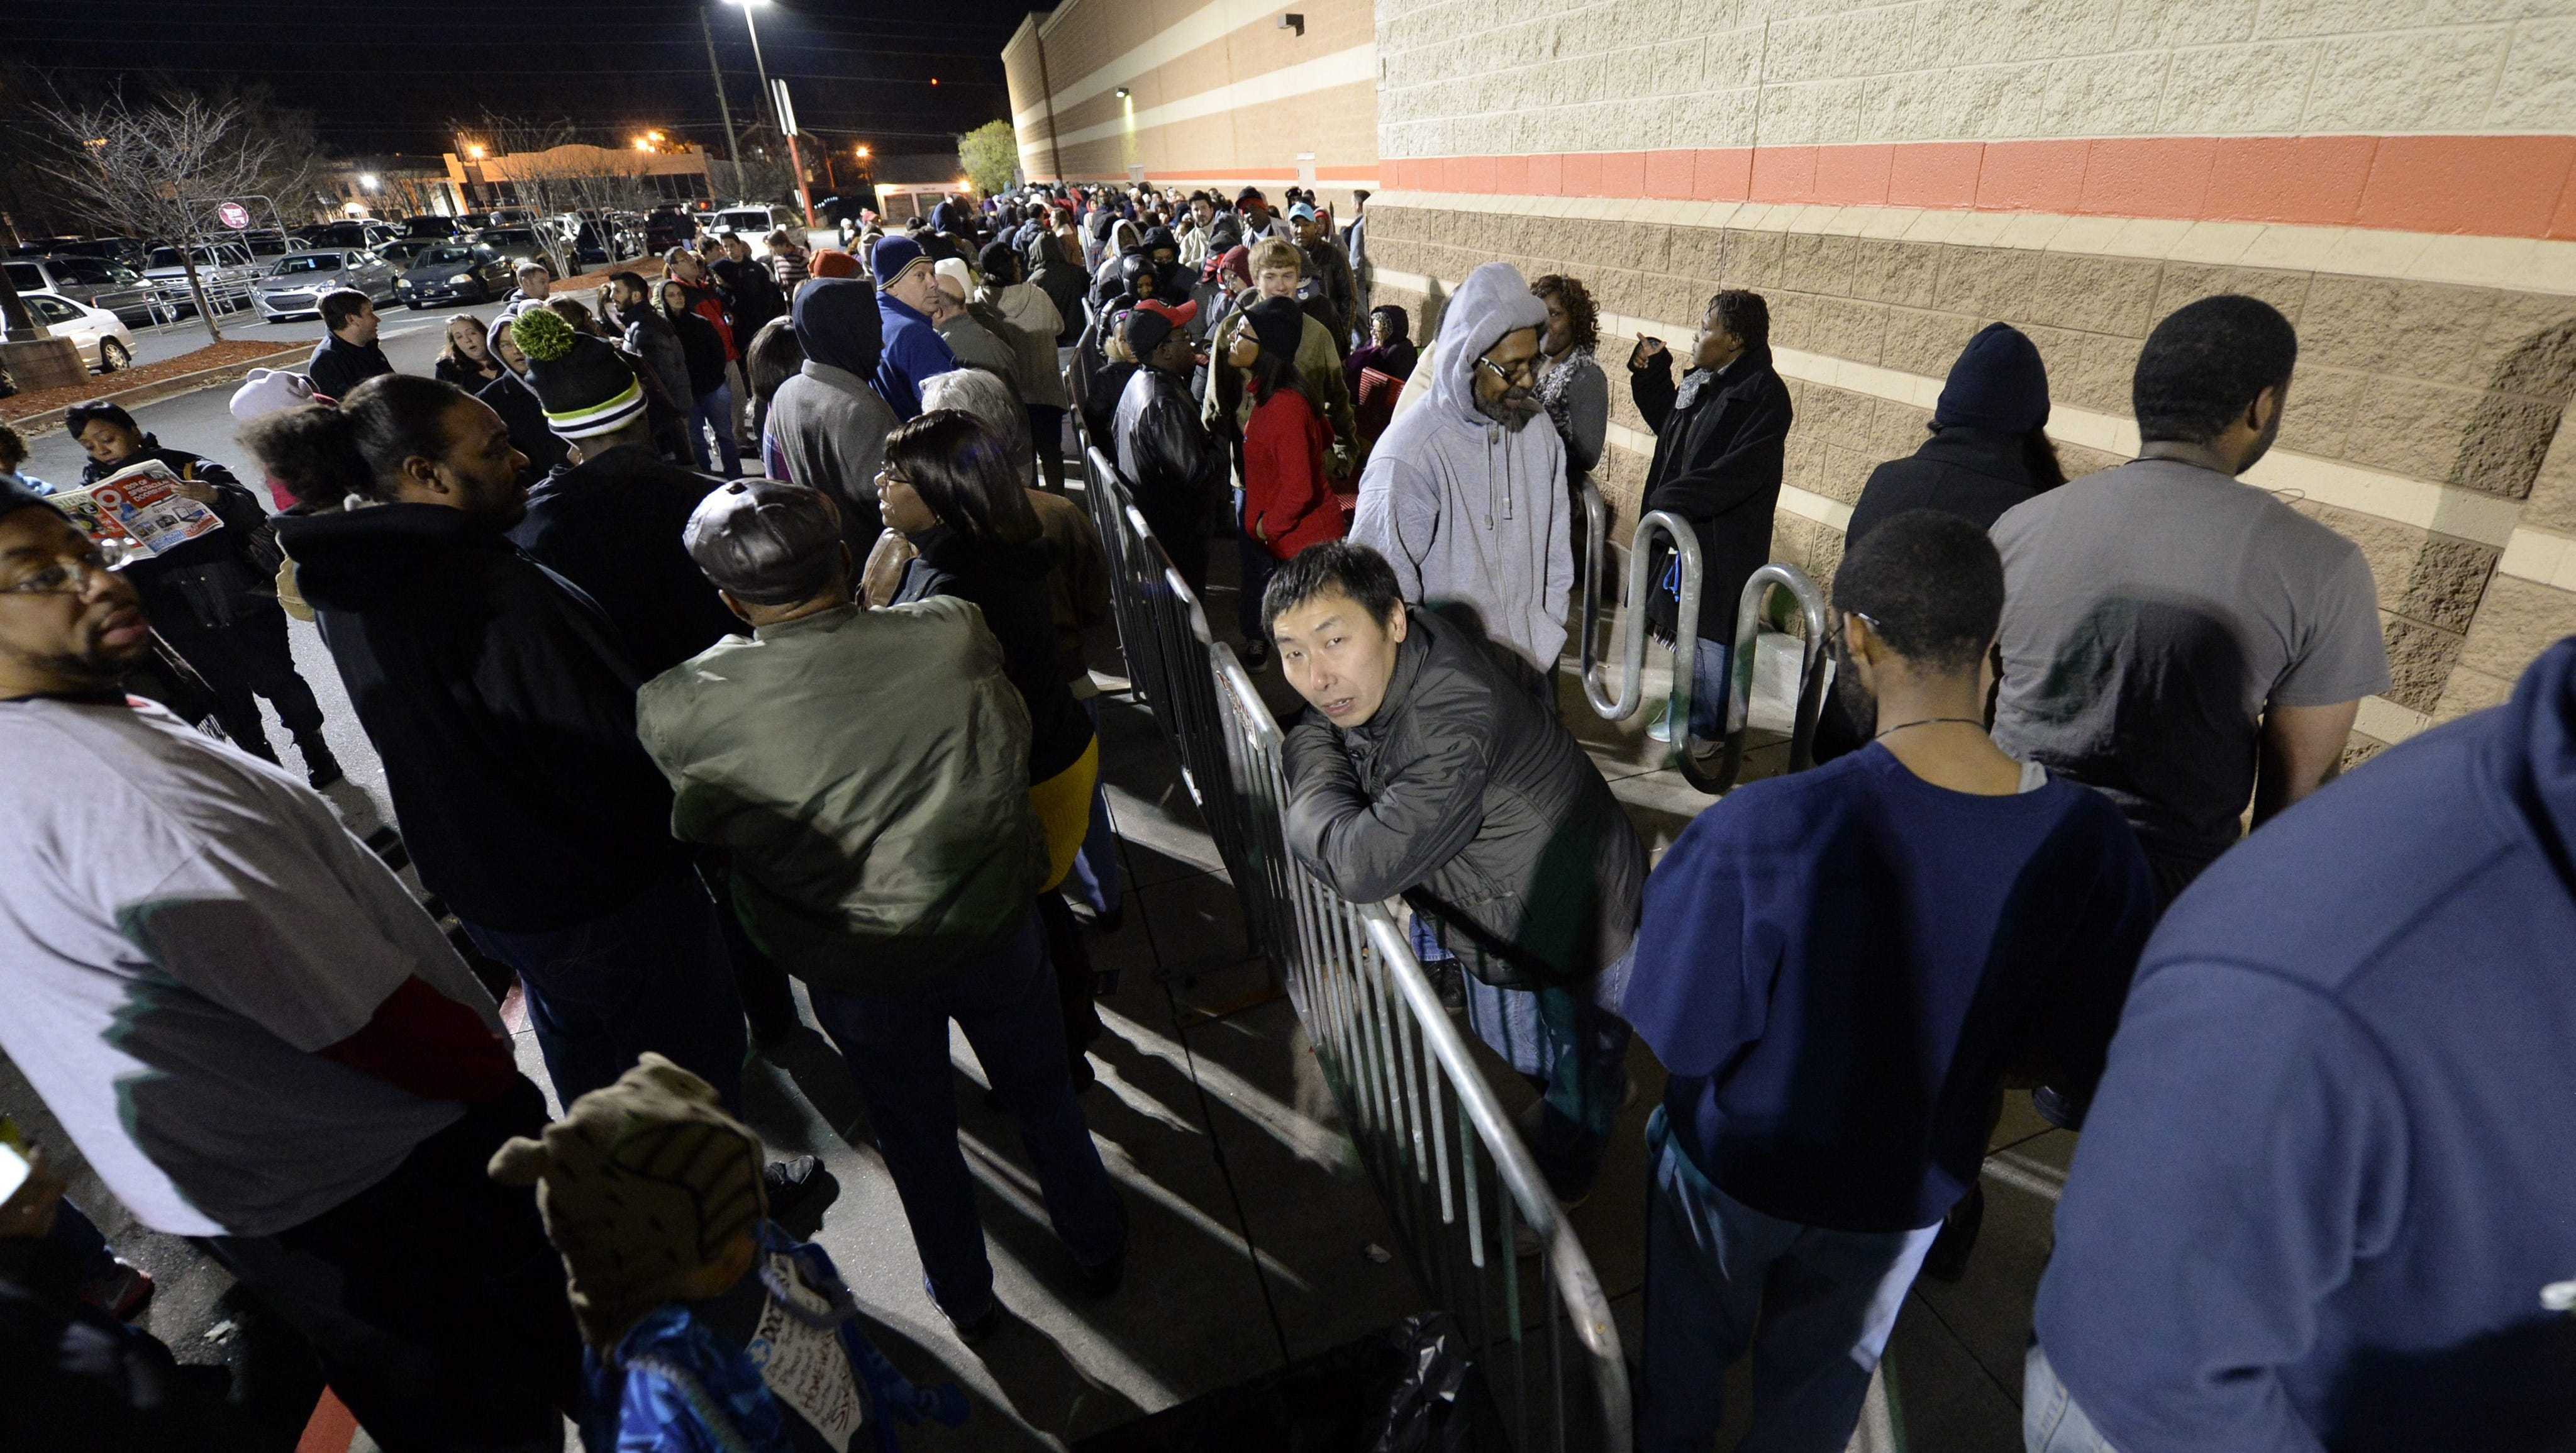 Black Friday Frenzy Leads To Reports Of Violence